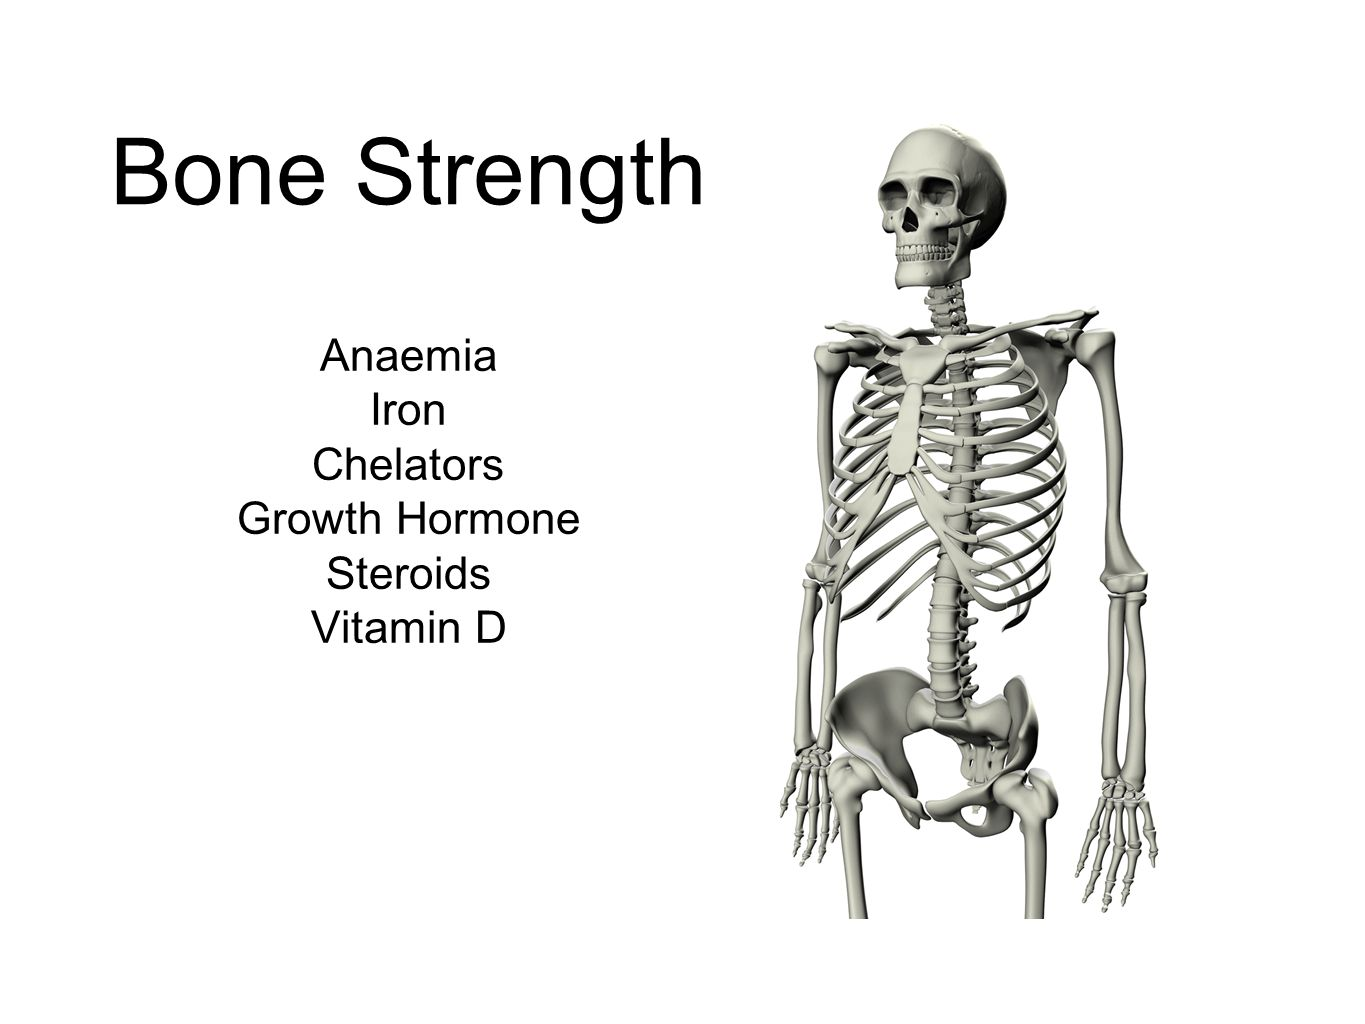 Bone Strength Anaemia Iron Chelators Growth Hormone Steroids Vitamin D